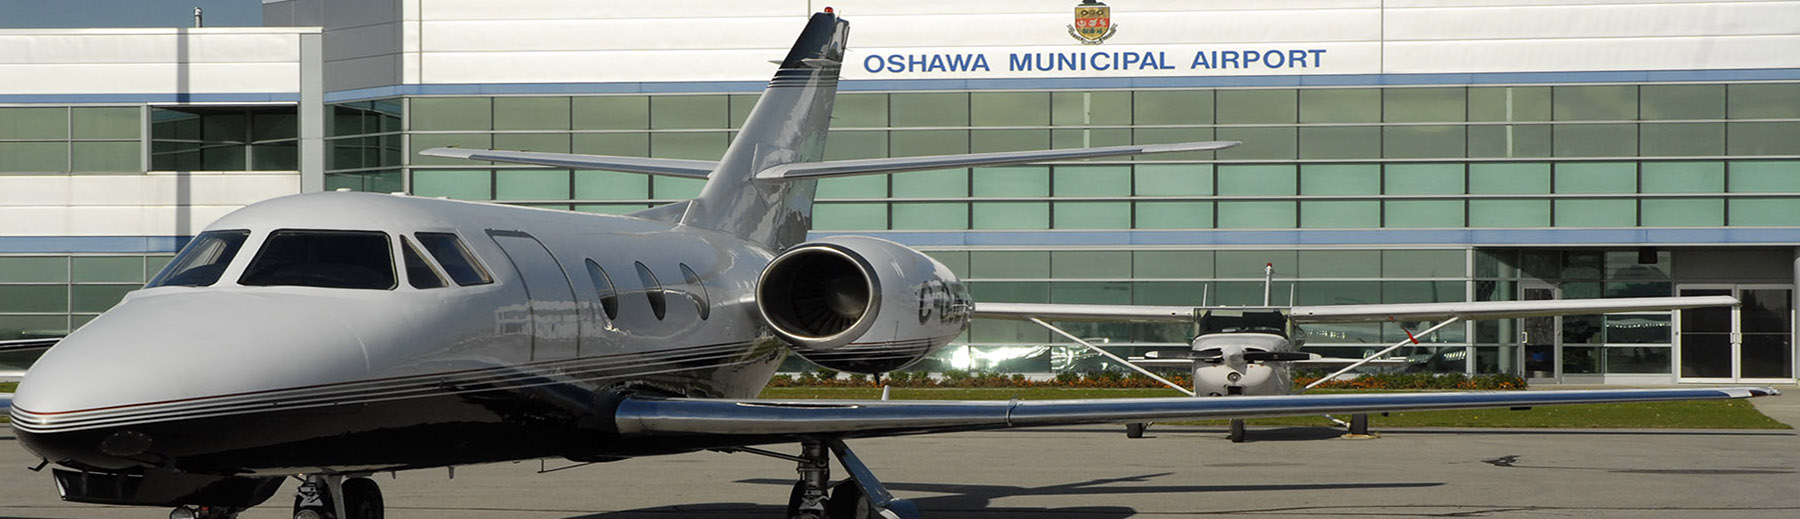 Planes stand on the tarmac outside the Oshawa Municipal Airport